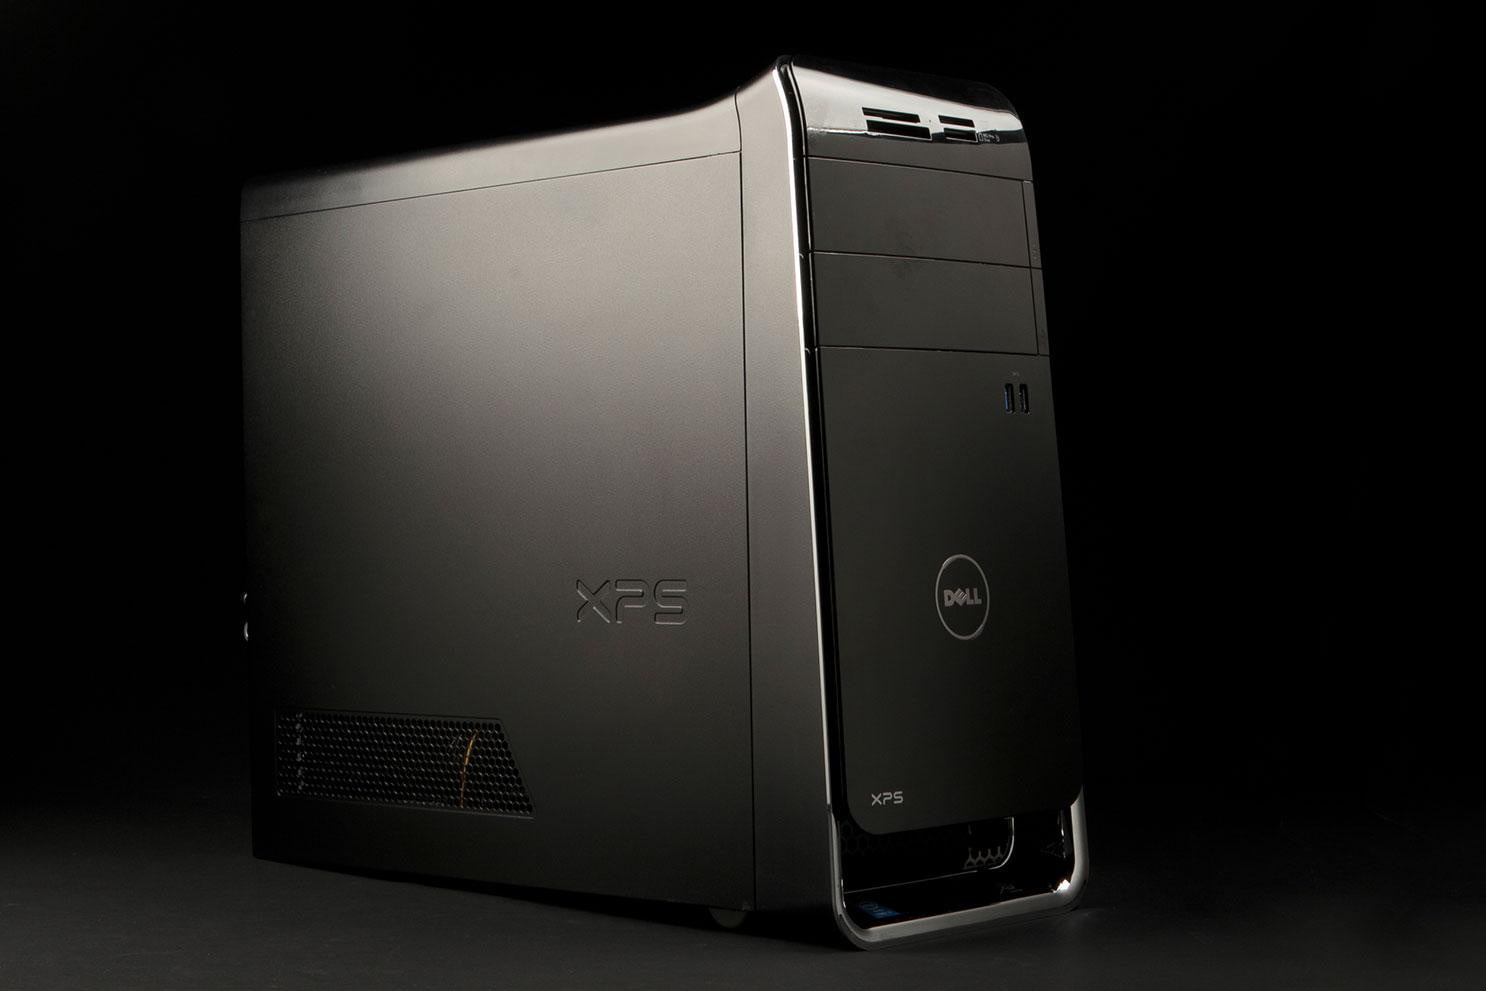 0 2817 2424864 00 together with 679793 Dell Xps 8500 likewise Dell Xps Tower as well 0 2817 2424864 00 furthermore 2. on dell xps 8700 special edition